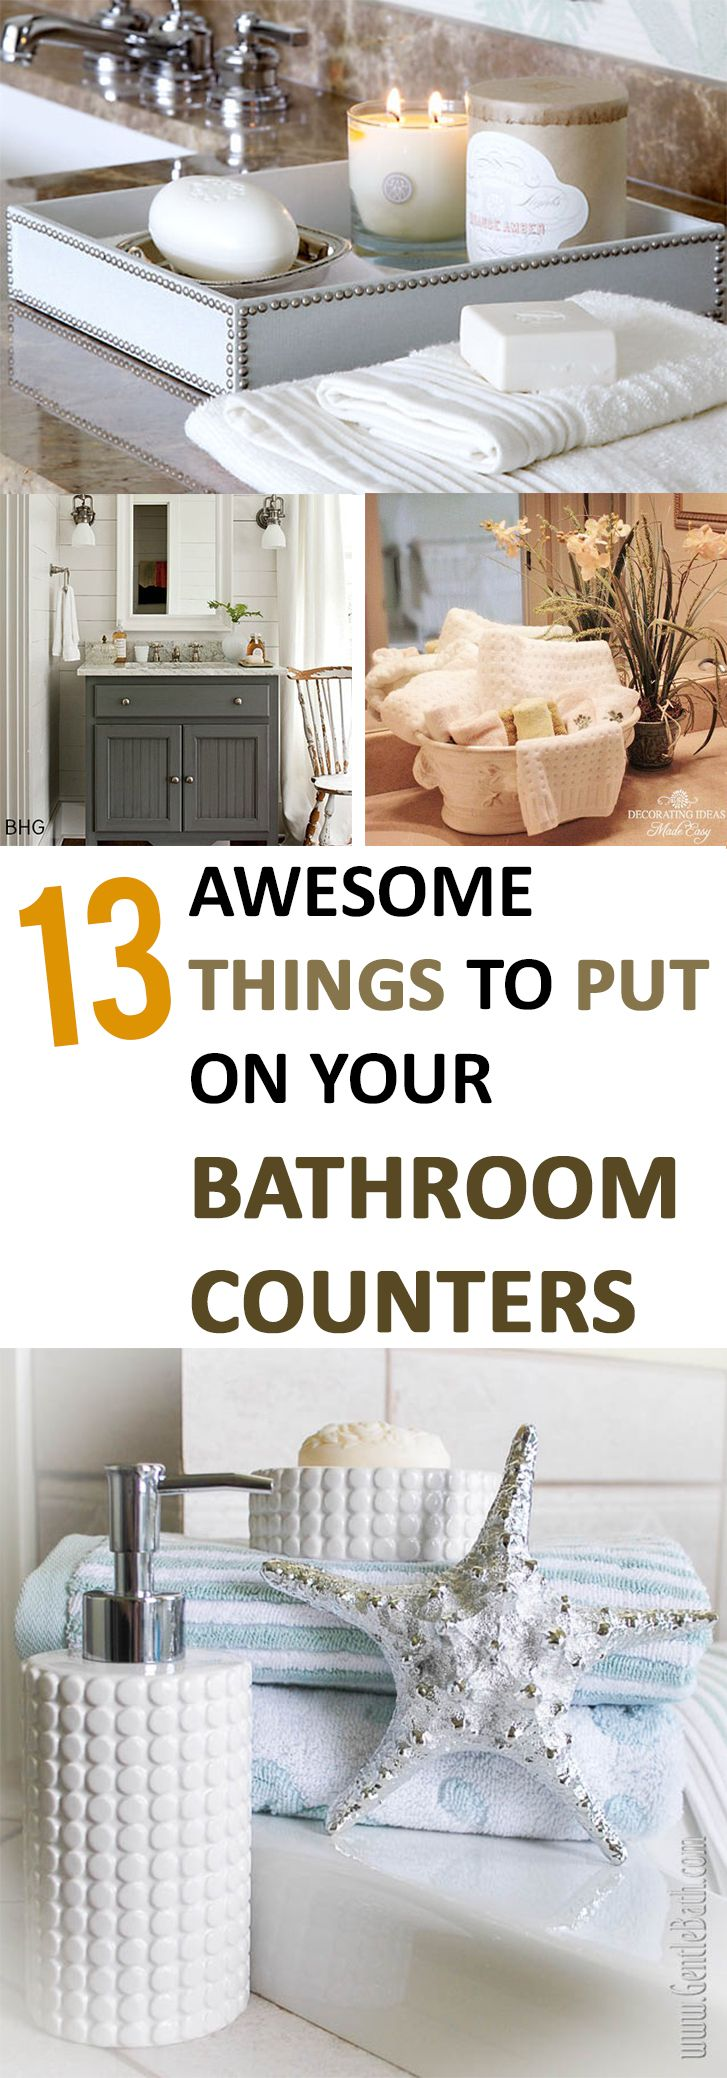 13 awesome things to put on your bathroom counters diy - How to decorate a bathroom counter ...